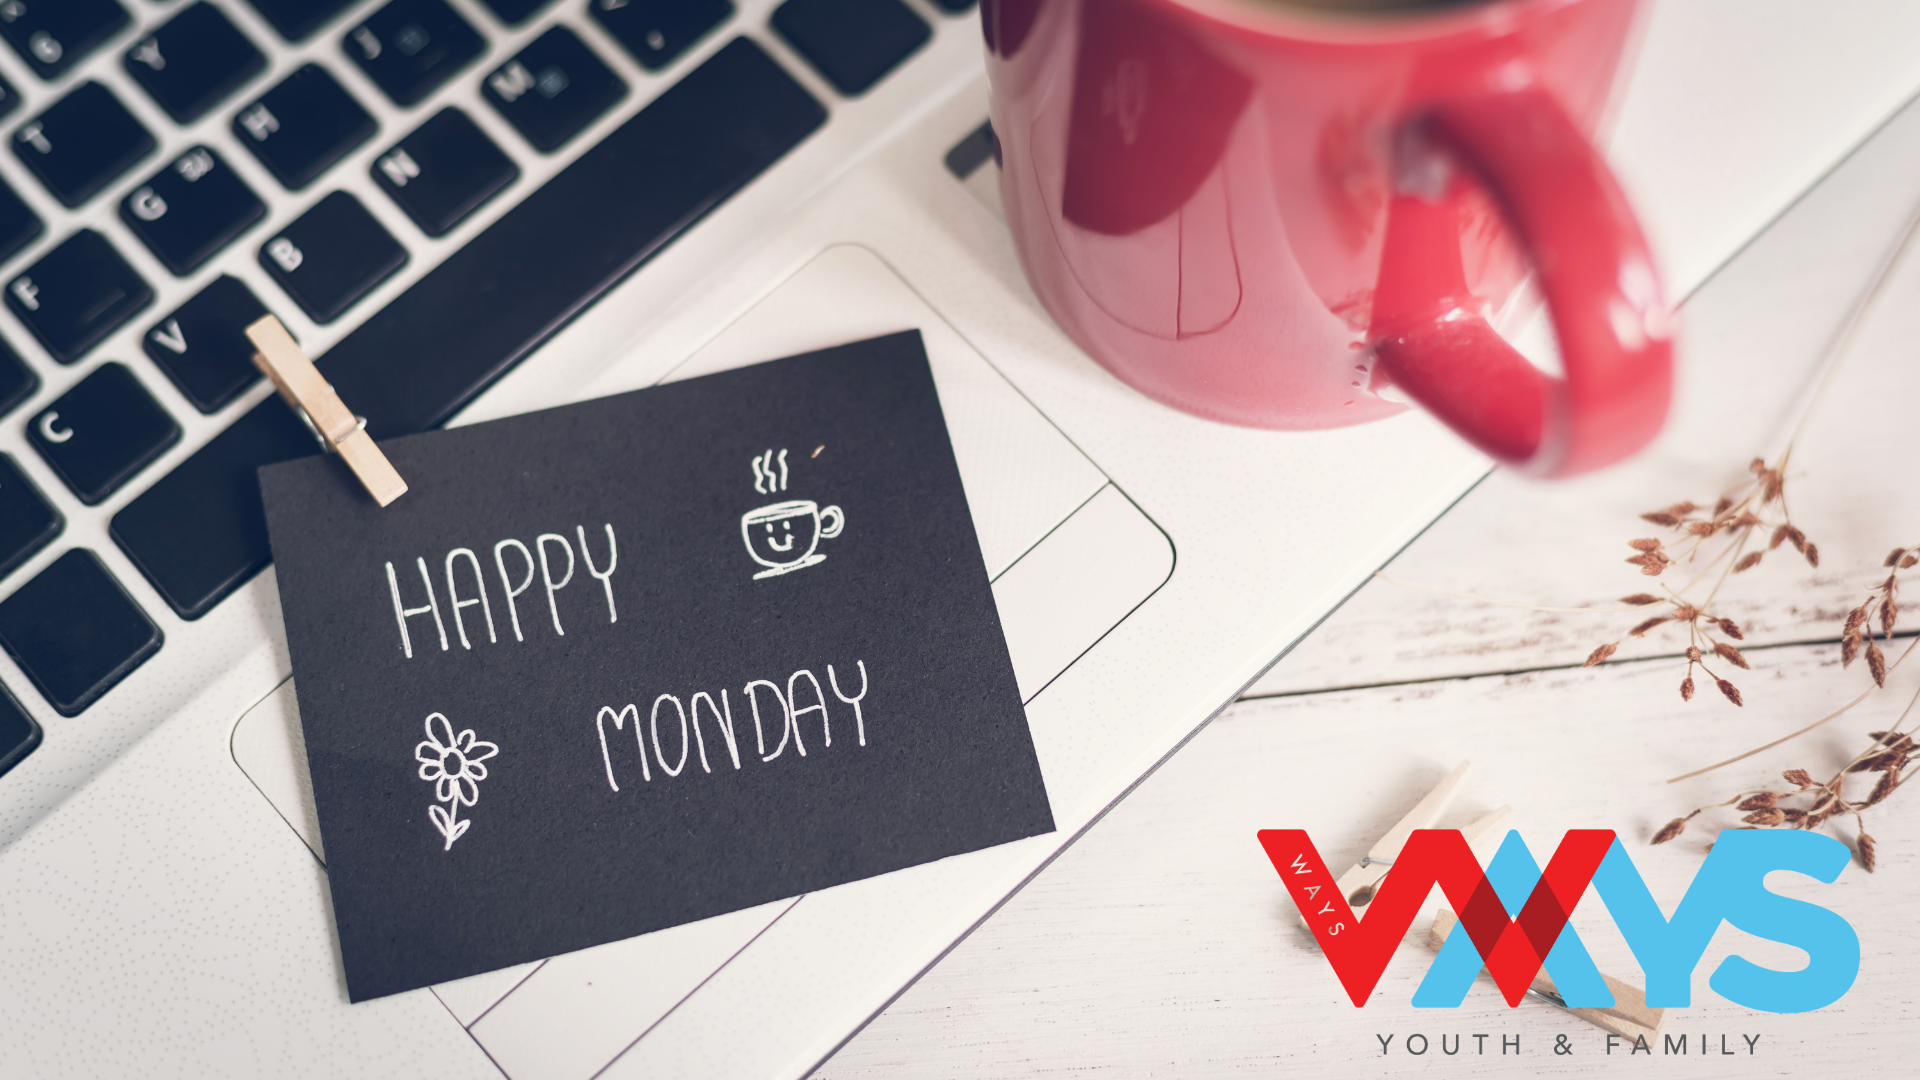 Mondayitis – When you lack motivation, here are some tips to help?